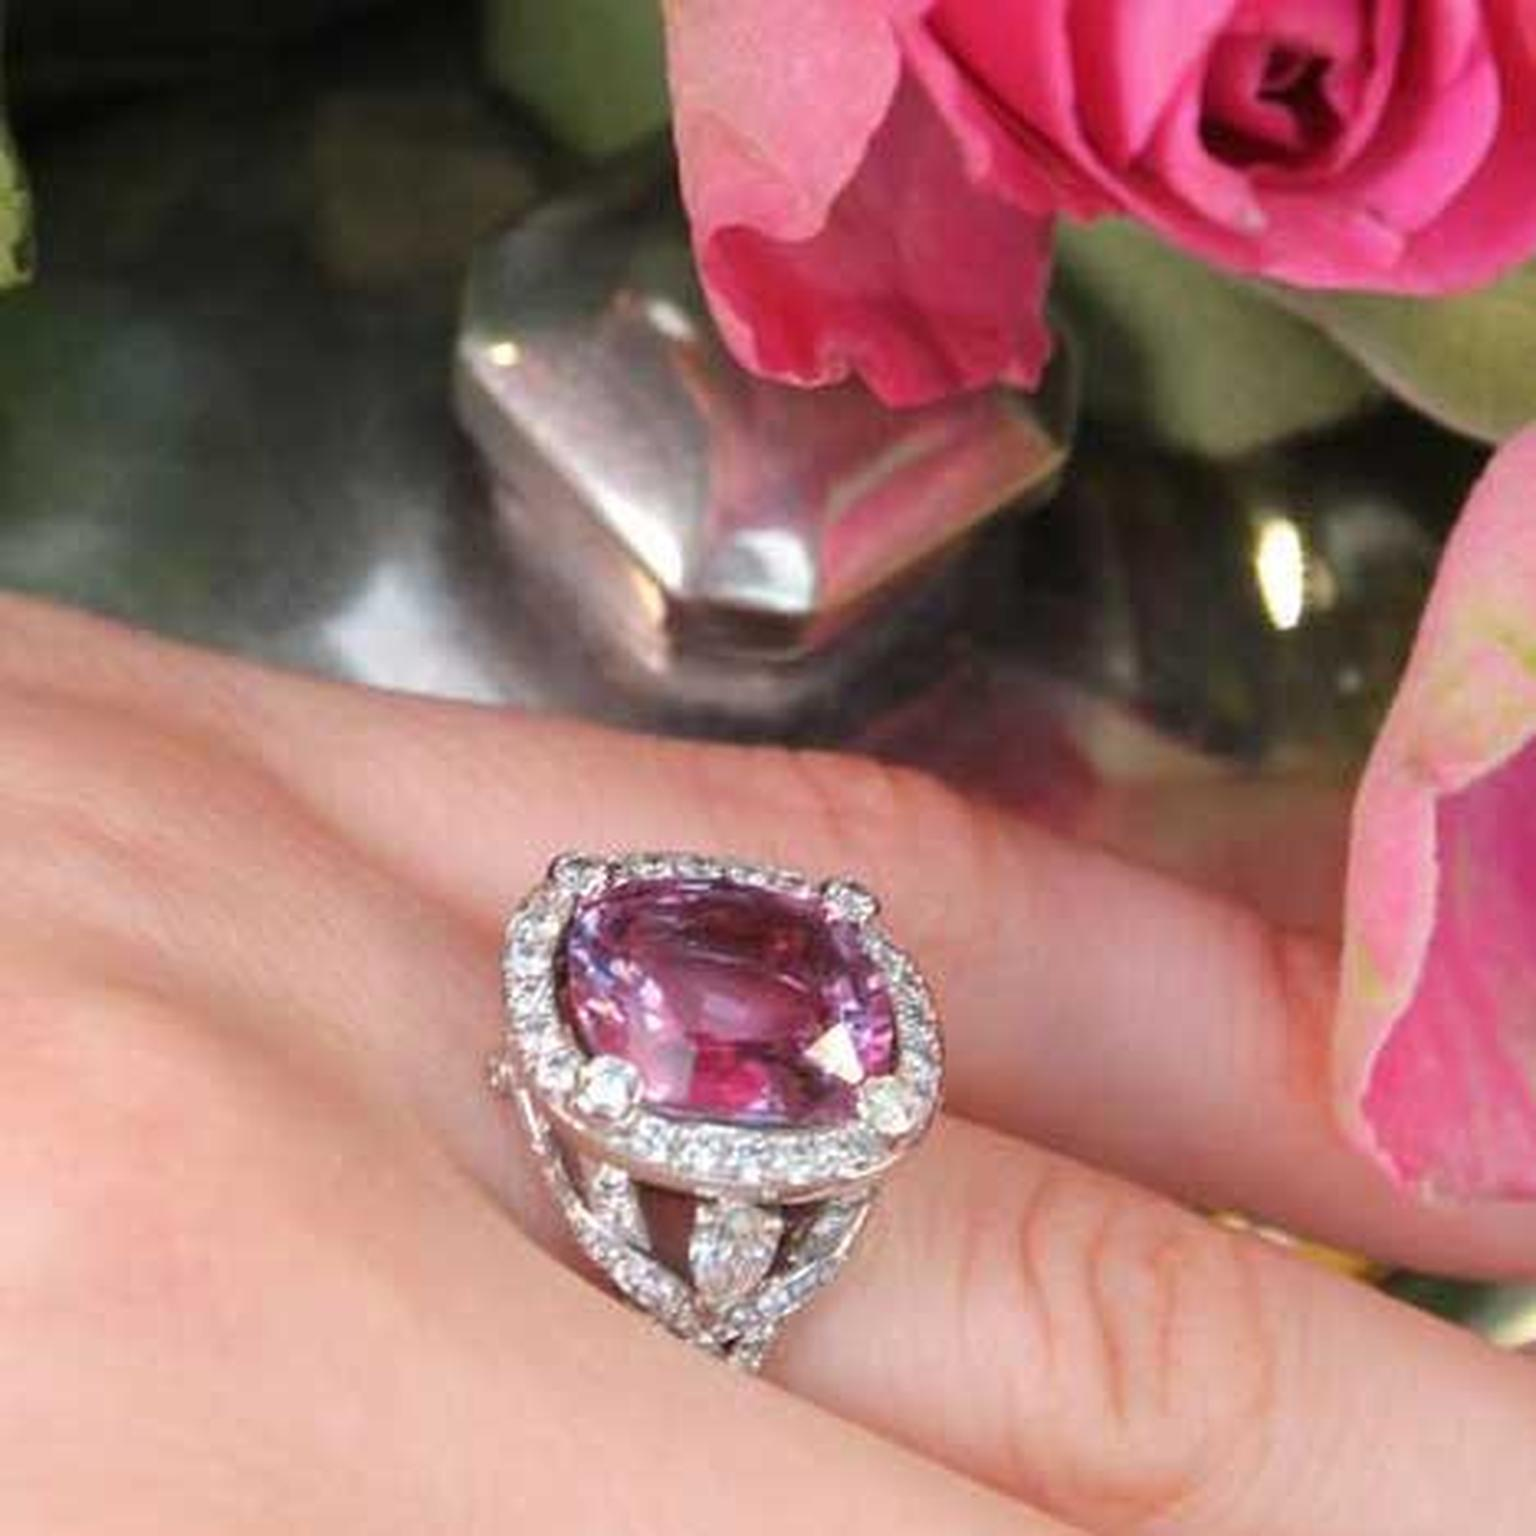 faberge pink sapphire engagement ring.jpg